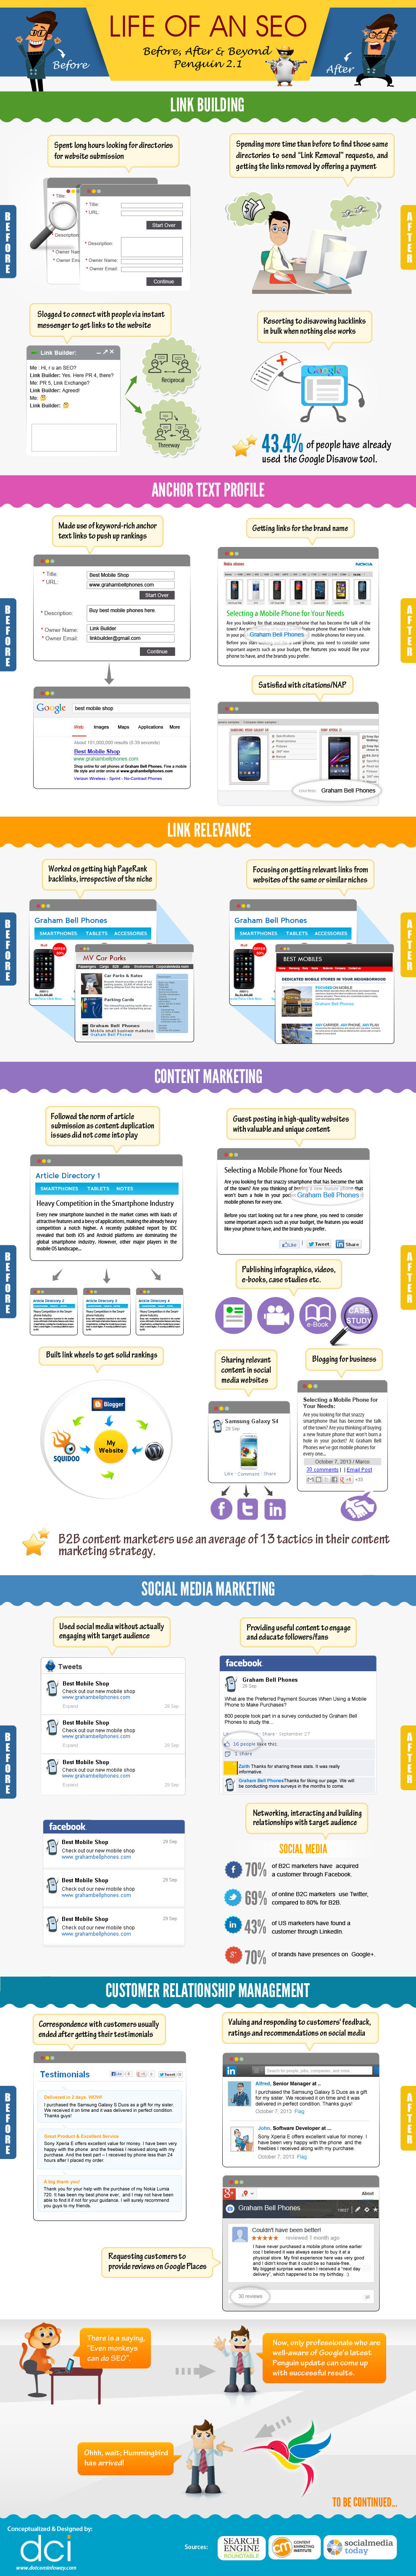 The Life of an SEO: Before, After, and Beyond Penguin 2.1 infographic